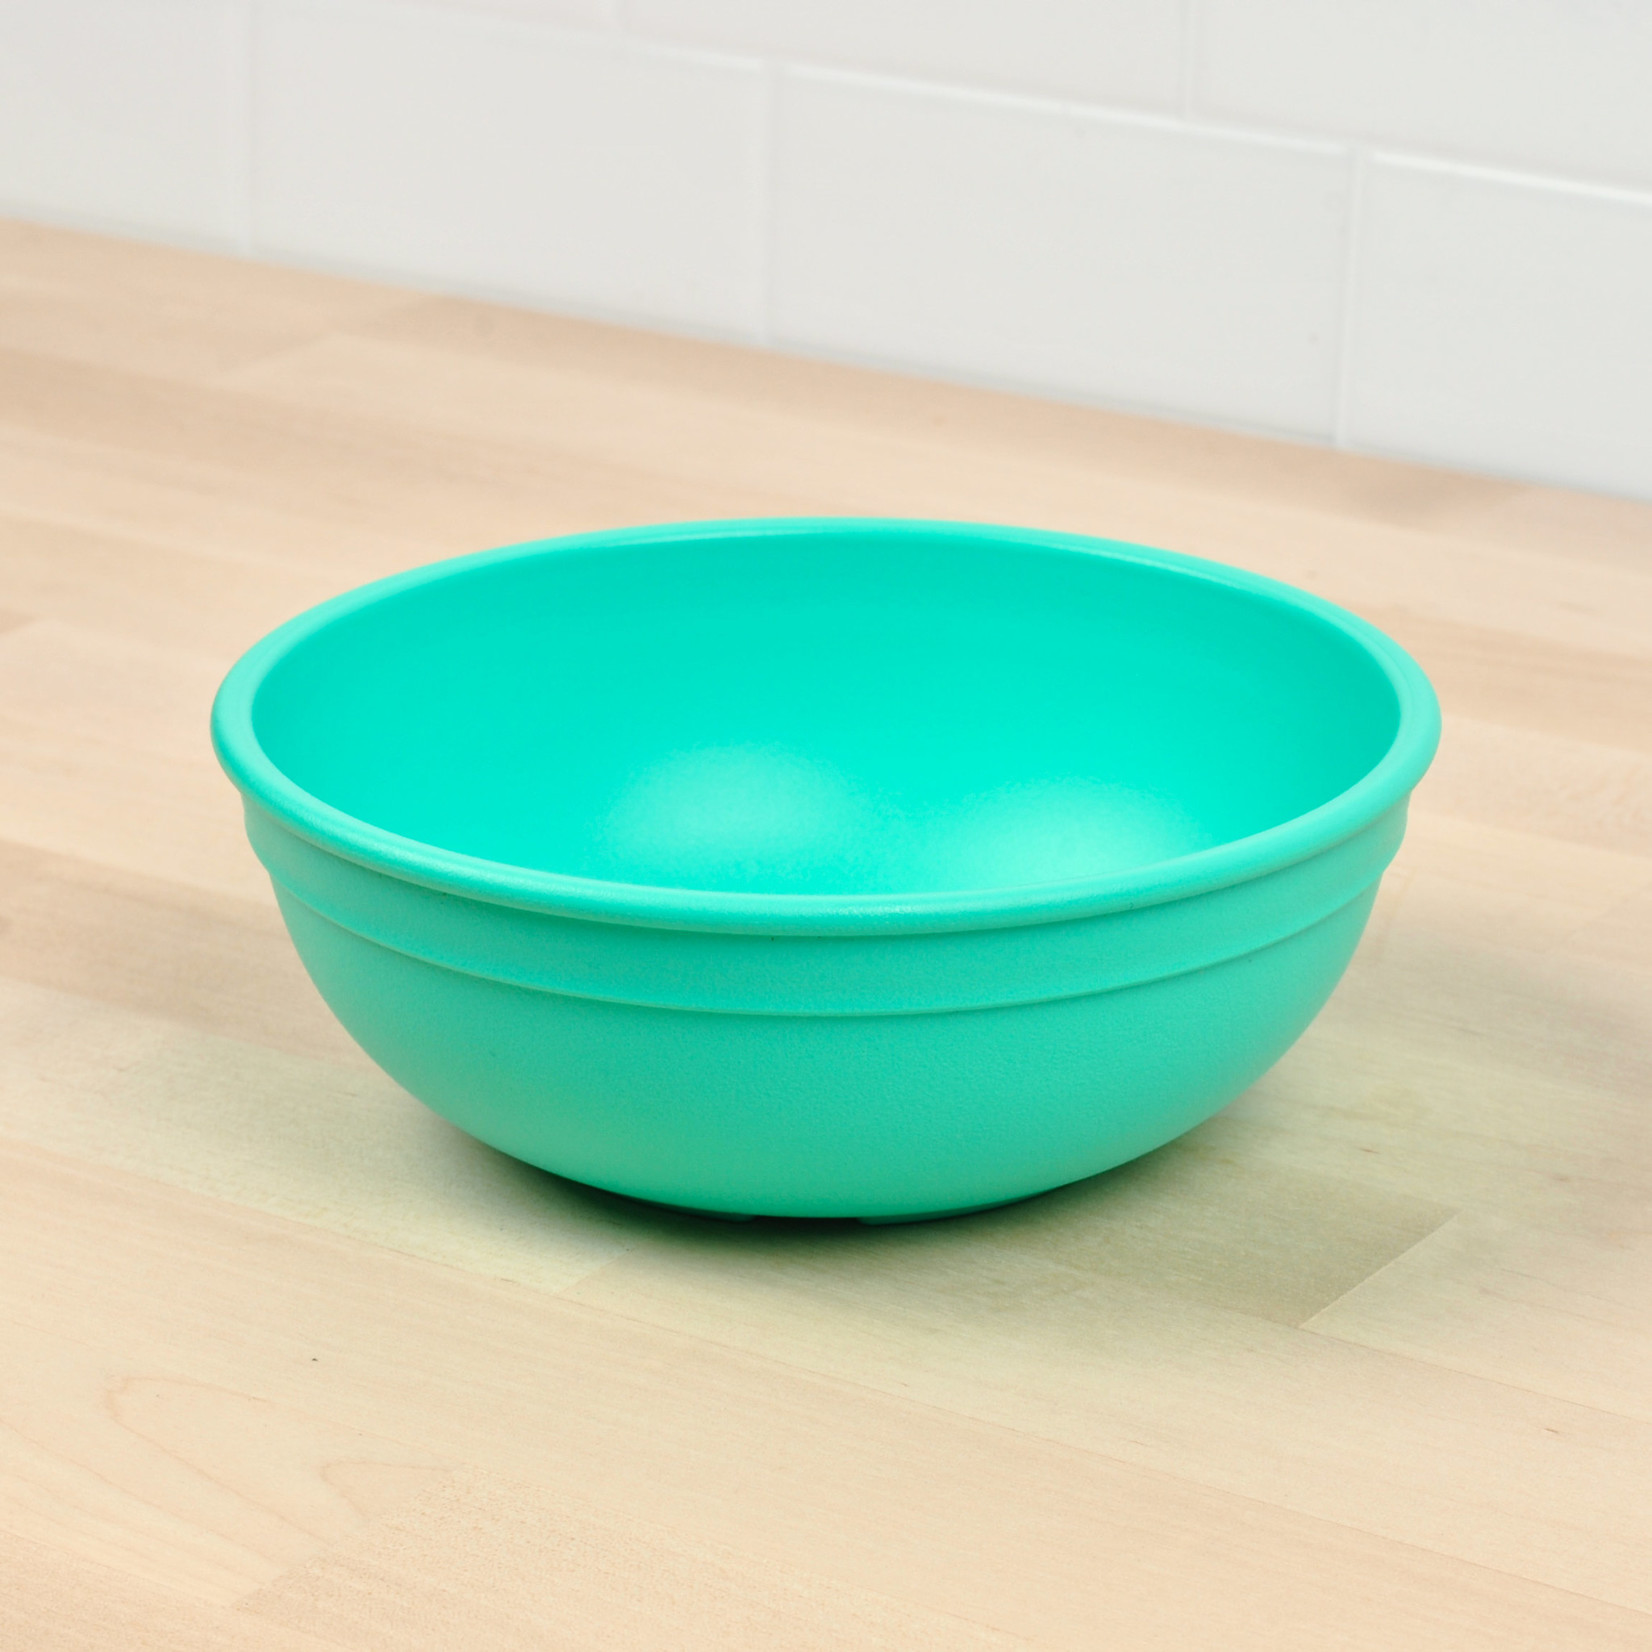 Replay Replay Large Bowl -Multiple Colours Available